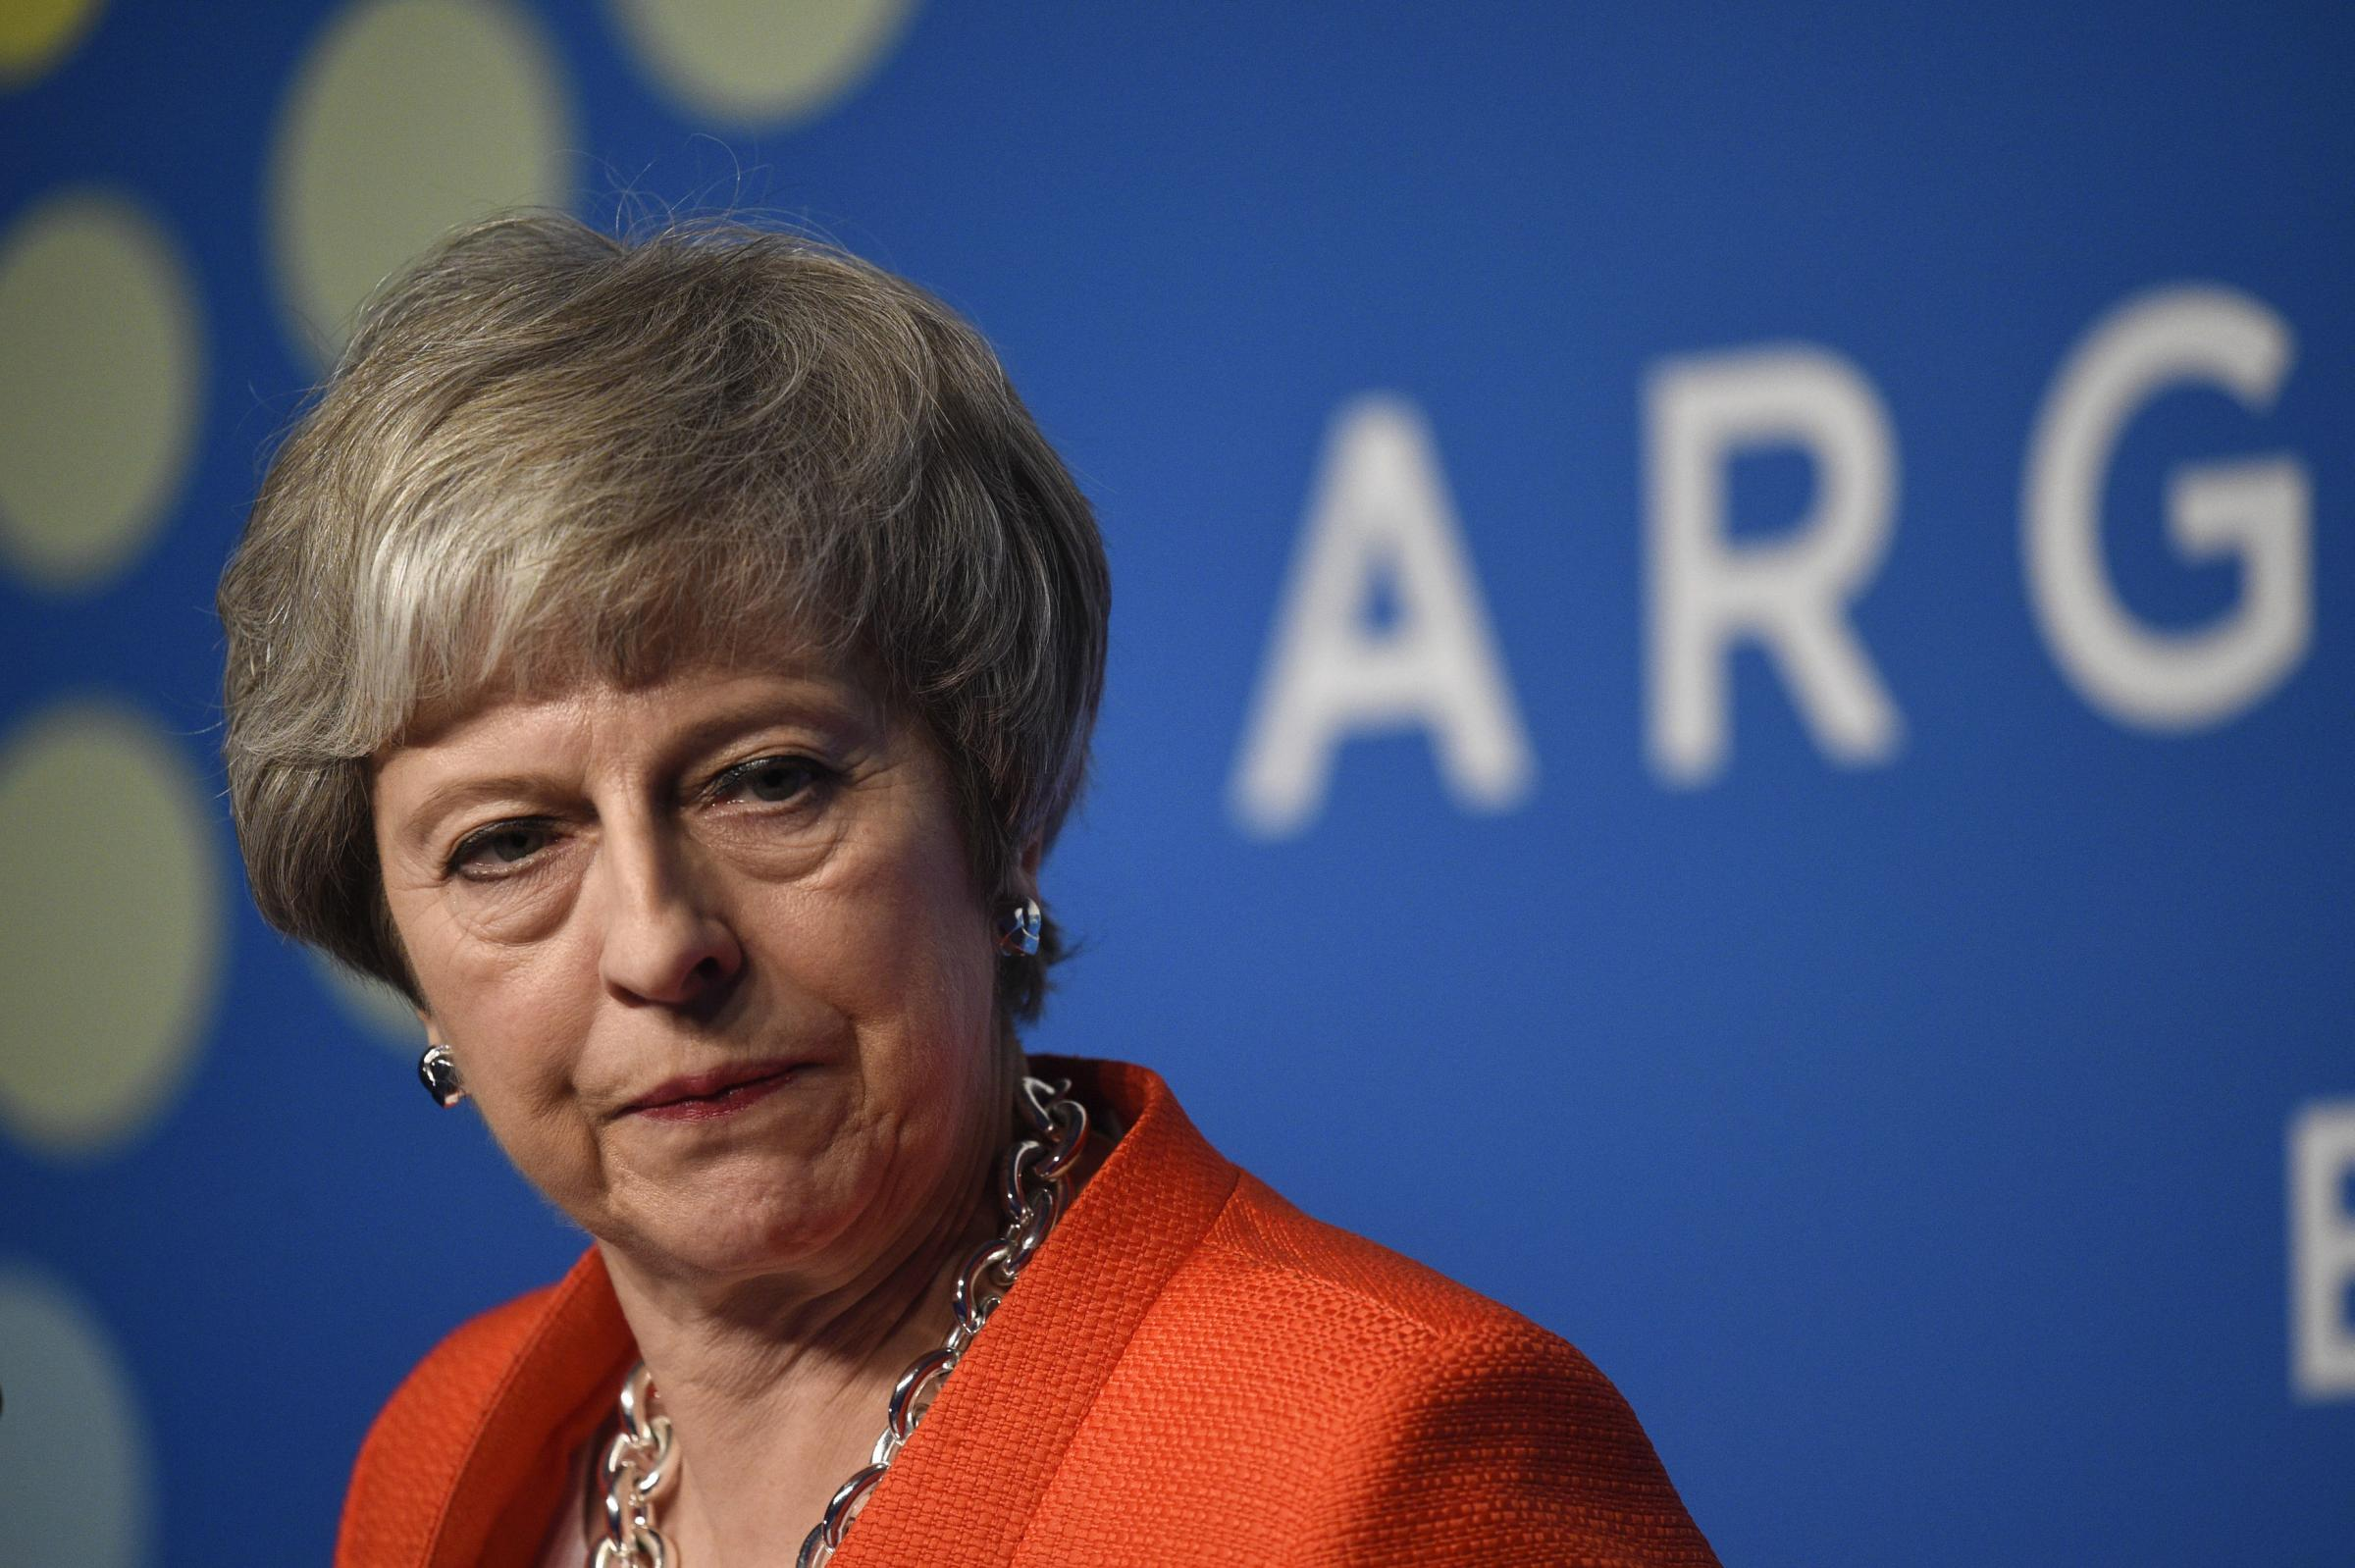 Britain's Prime Minister Theresa May speaks during a press conference after the G20 Leader's Summit in Buenos Aires, Argentina, Saturday, Dec. 1, 2018. Leaders from the Group of 20 industrialized nations met for two days in Buenos Aires. (AP Photo